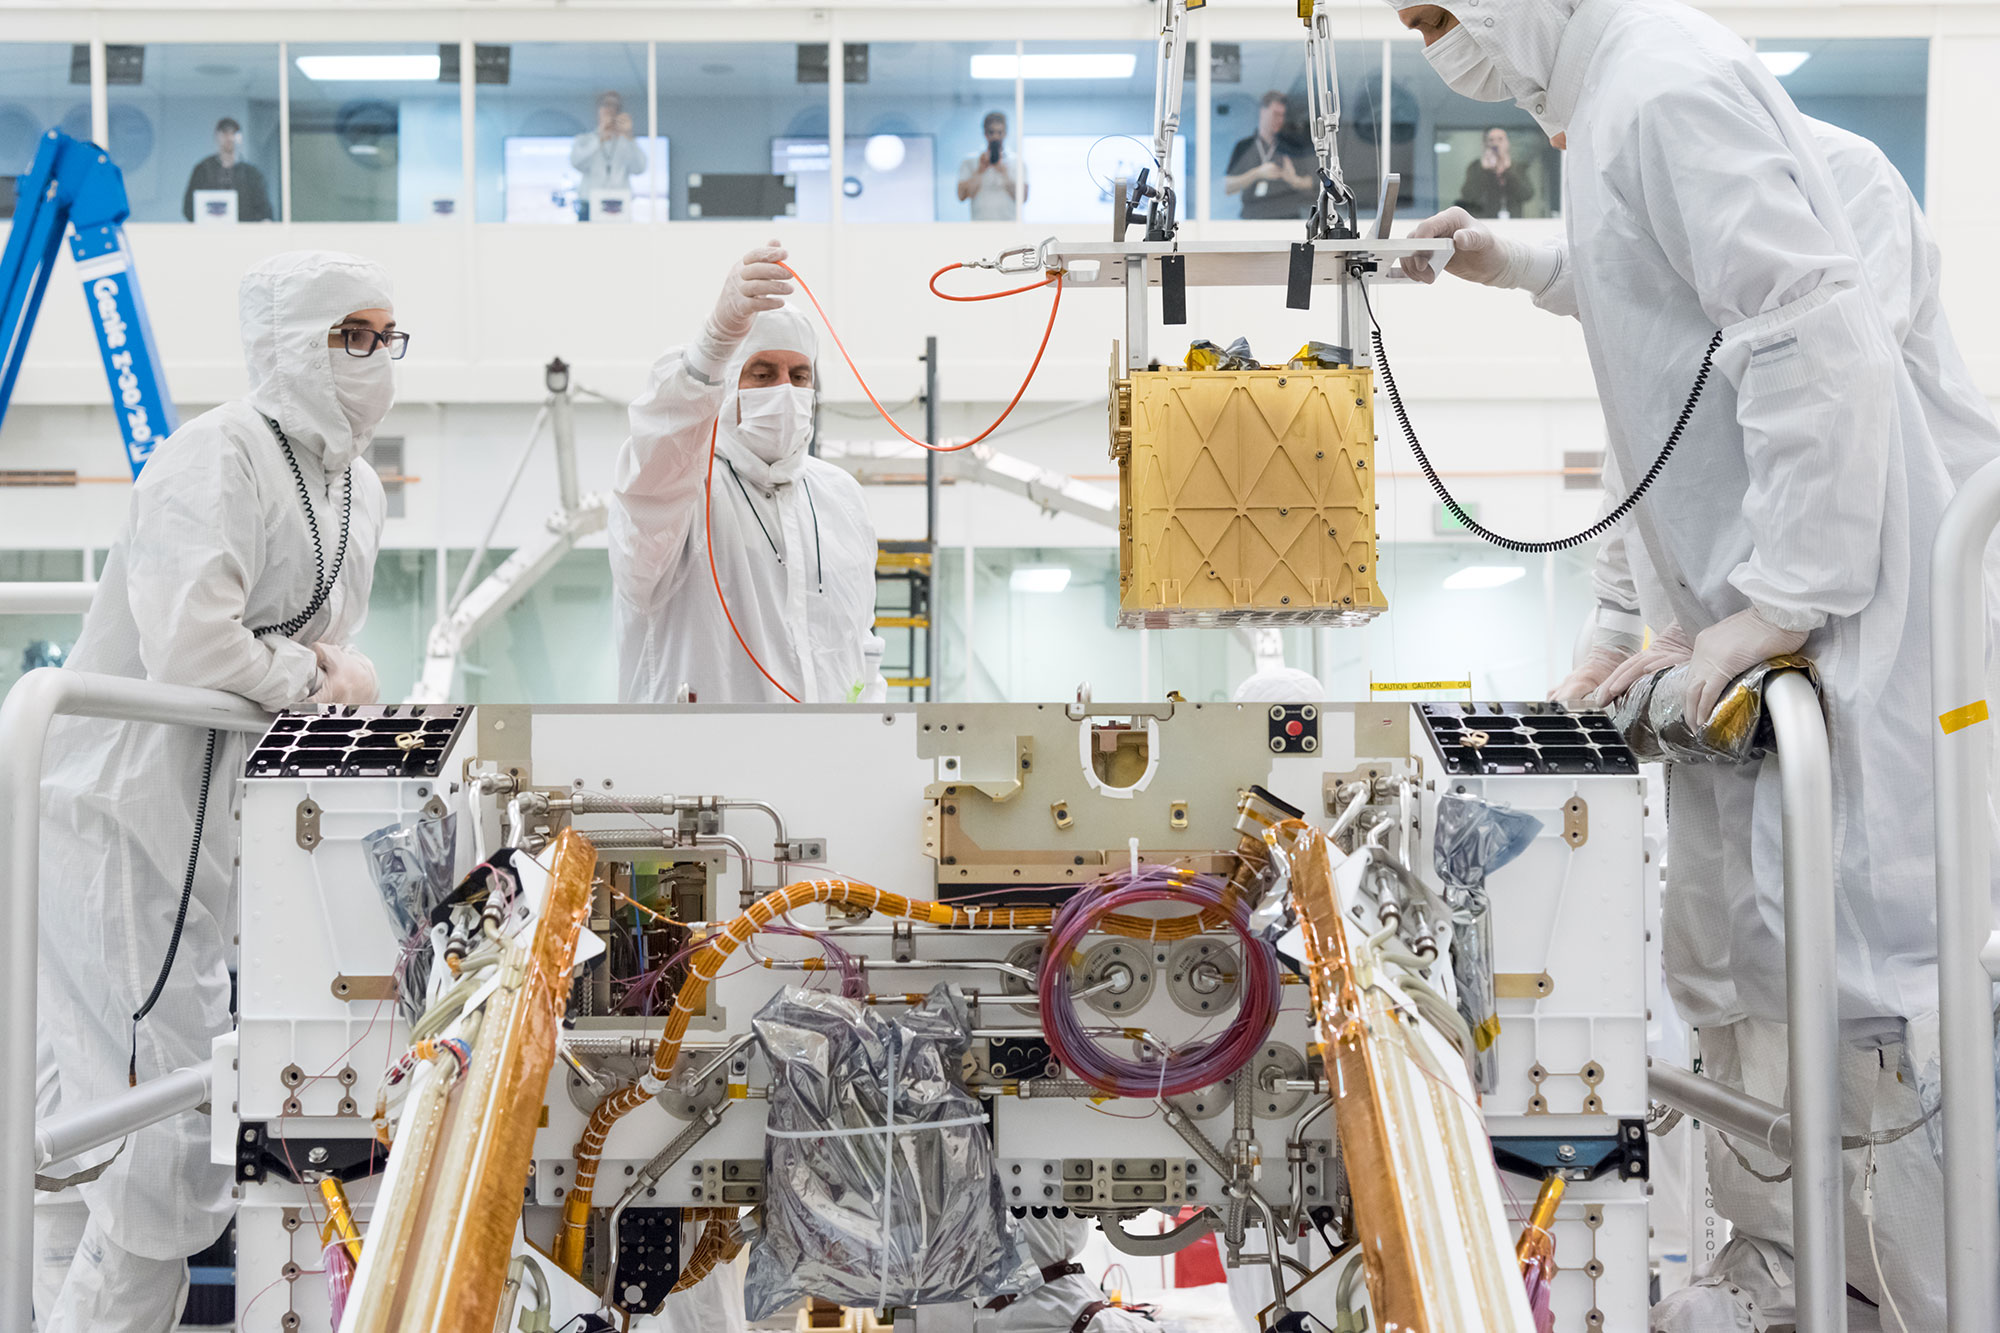 Engineers in white smocks lower a gold-colored cube into the rover